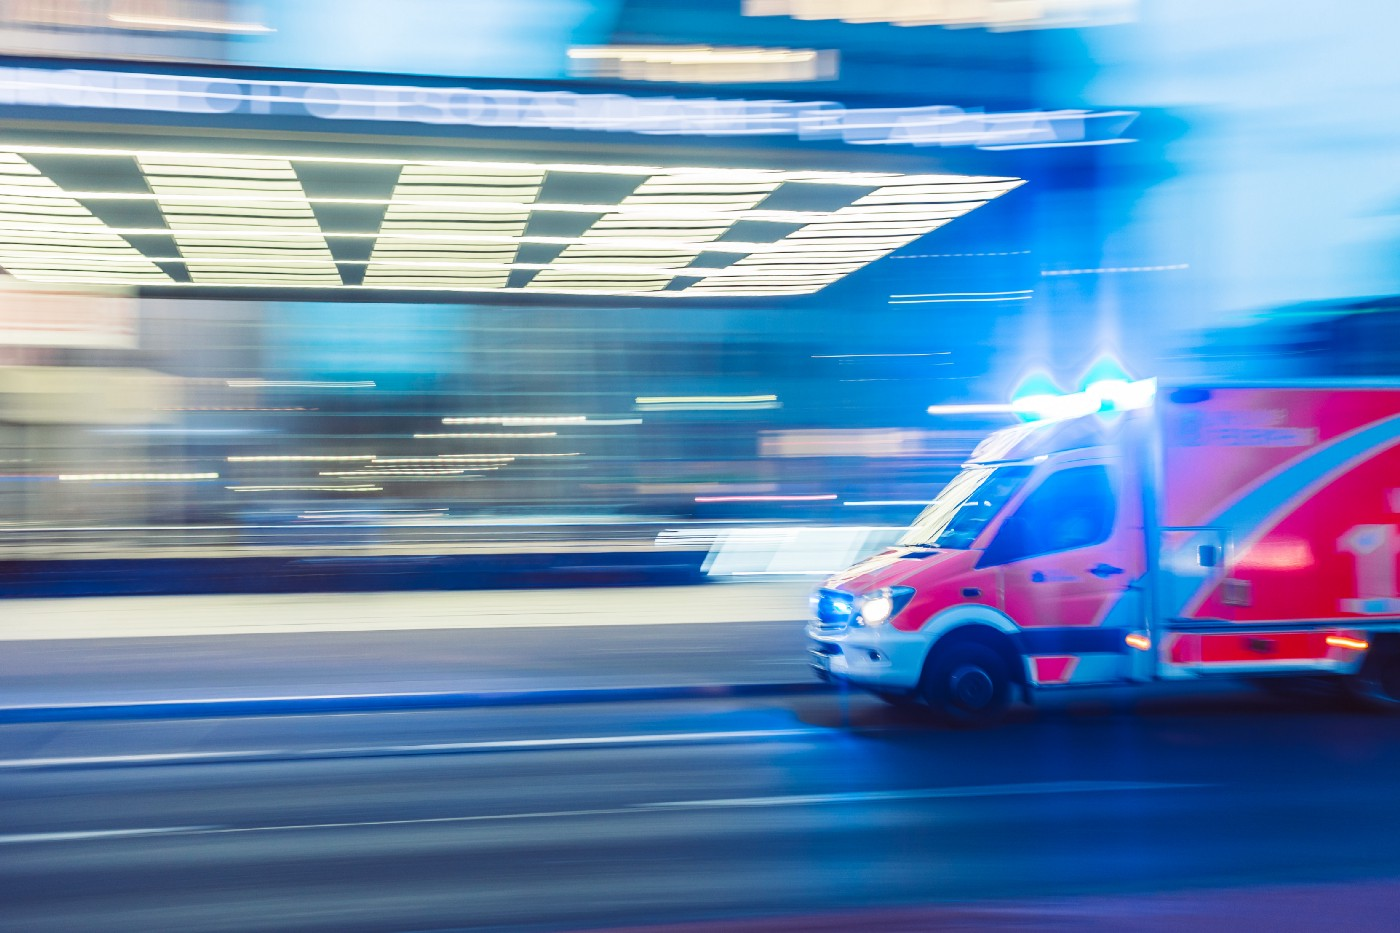 An ambulance speeding down the road. The photo is a bit blurry to show the action.